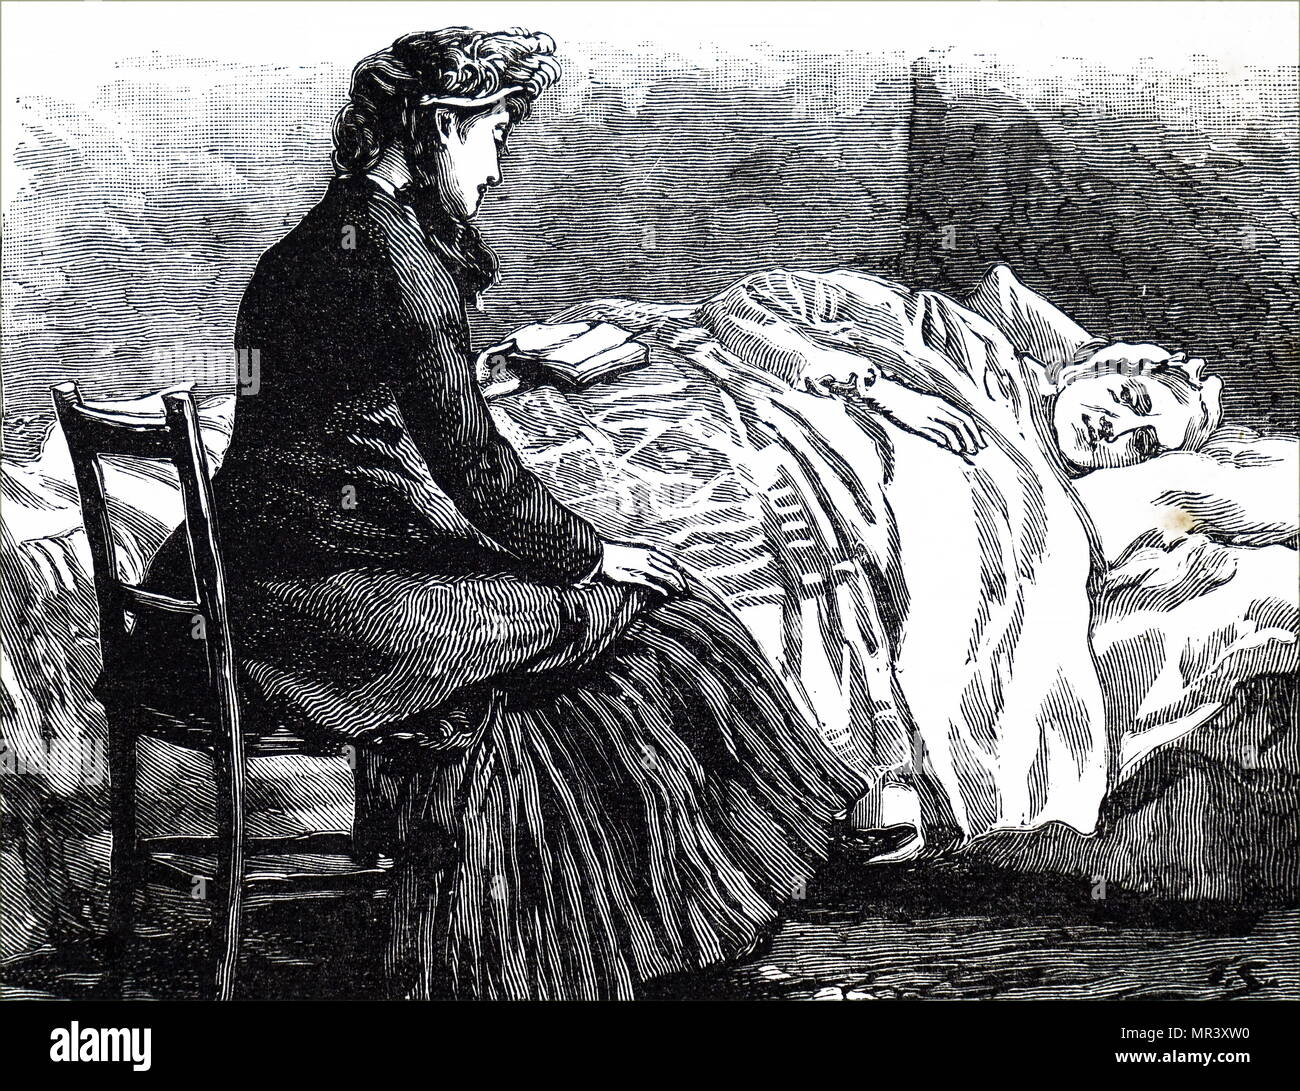 Illustration depicting a woman reading to an old bed-ridden woman. Dated 19th century - Stock Image